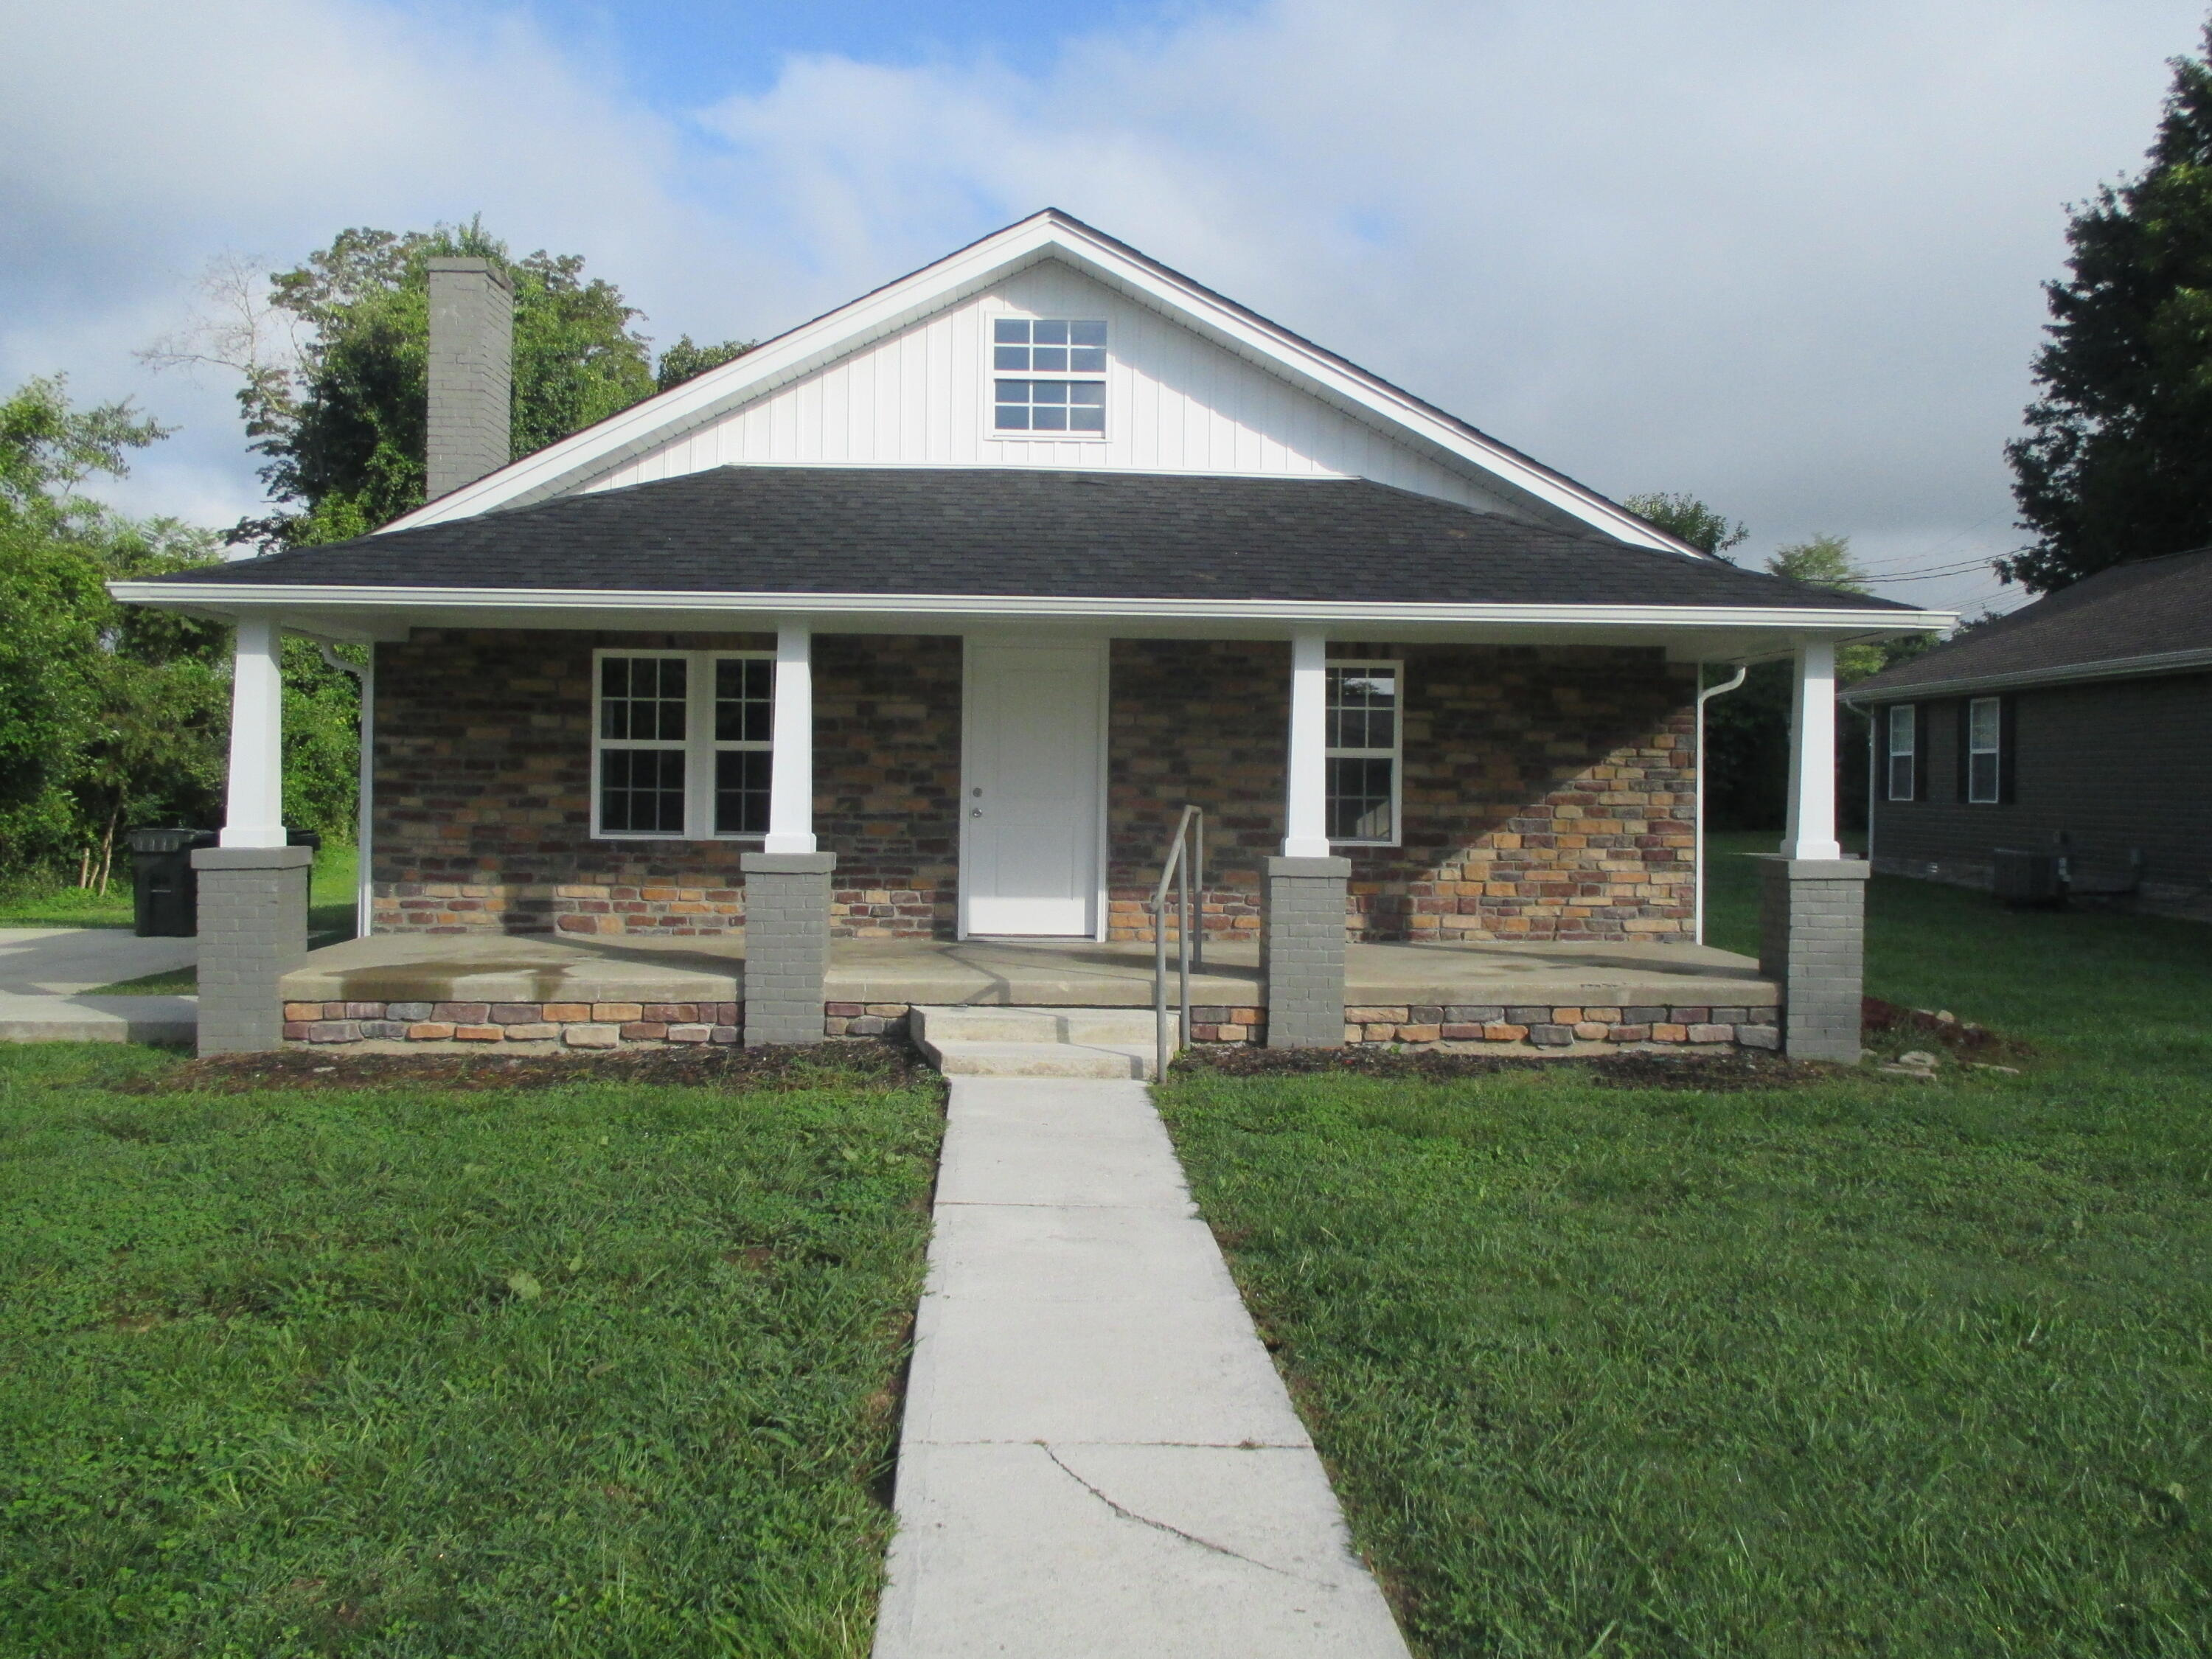 321 Cemetery Road, Williamsburg, KY 40769